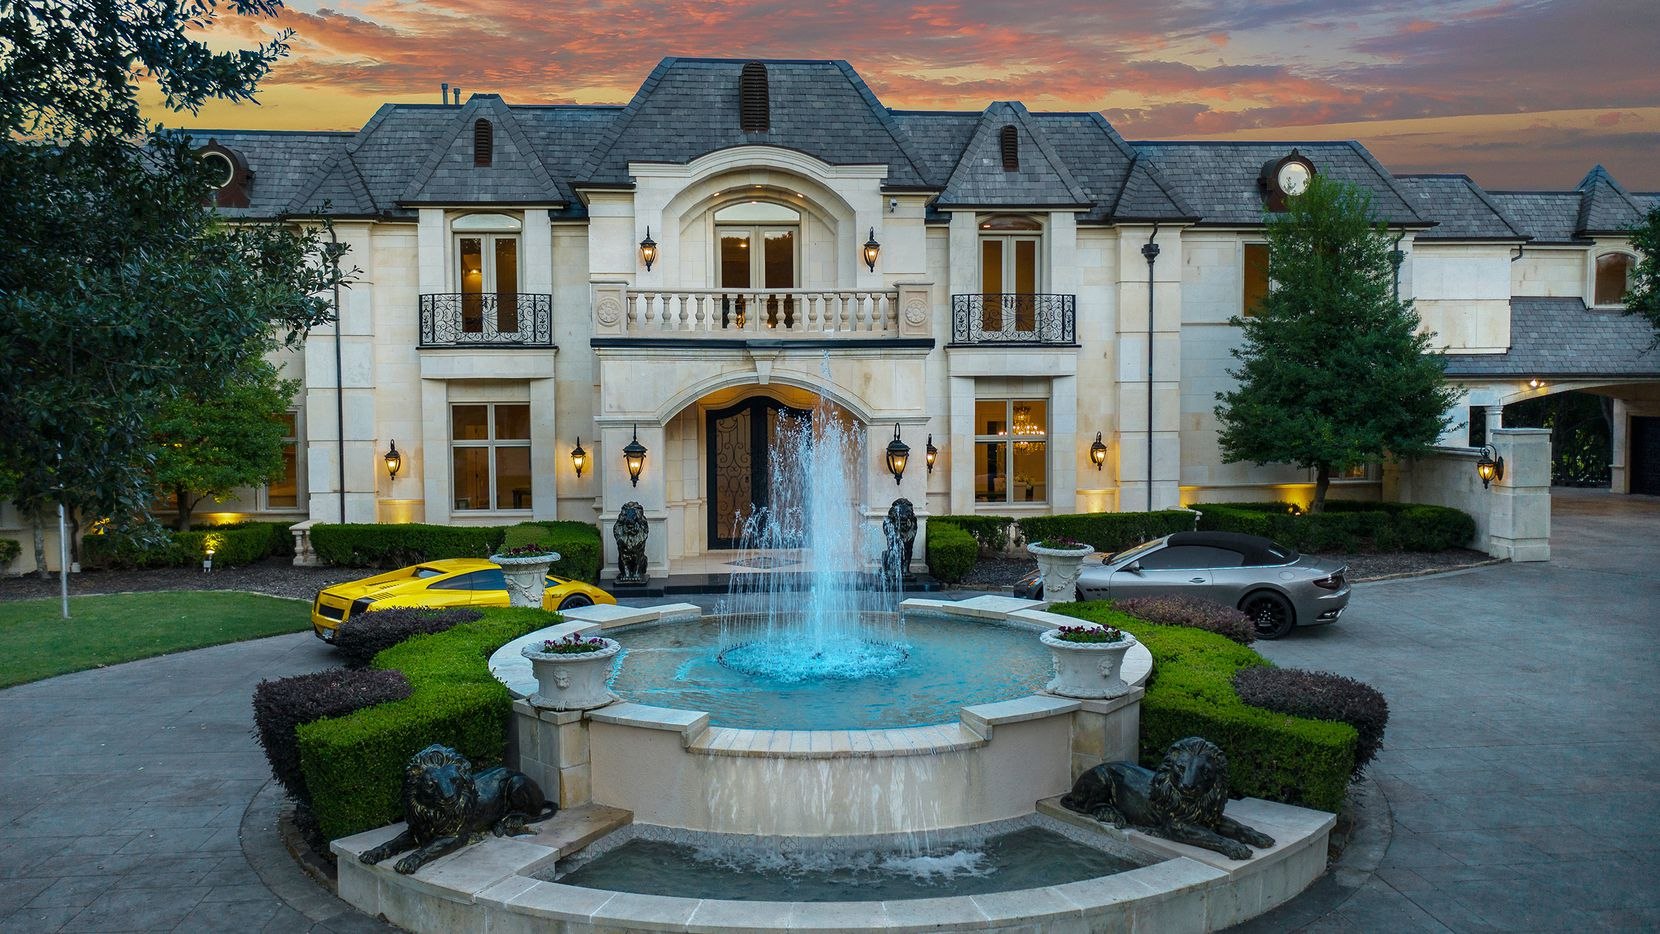 Offered at $4,490,000, the luxury-filled estate at 2000 Willow Bend Drive has a nine-car garage.